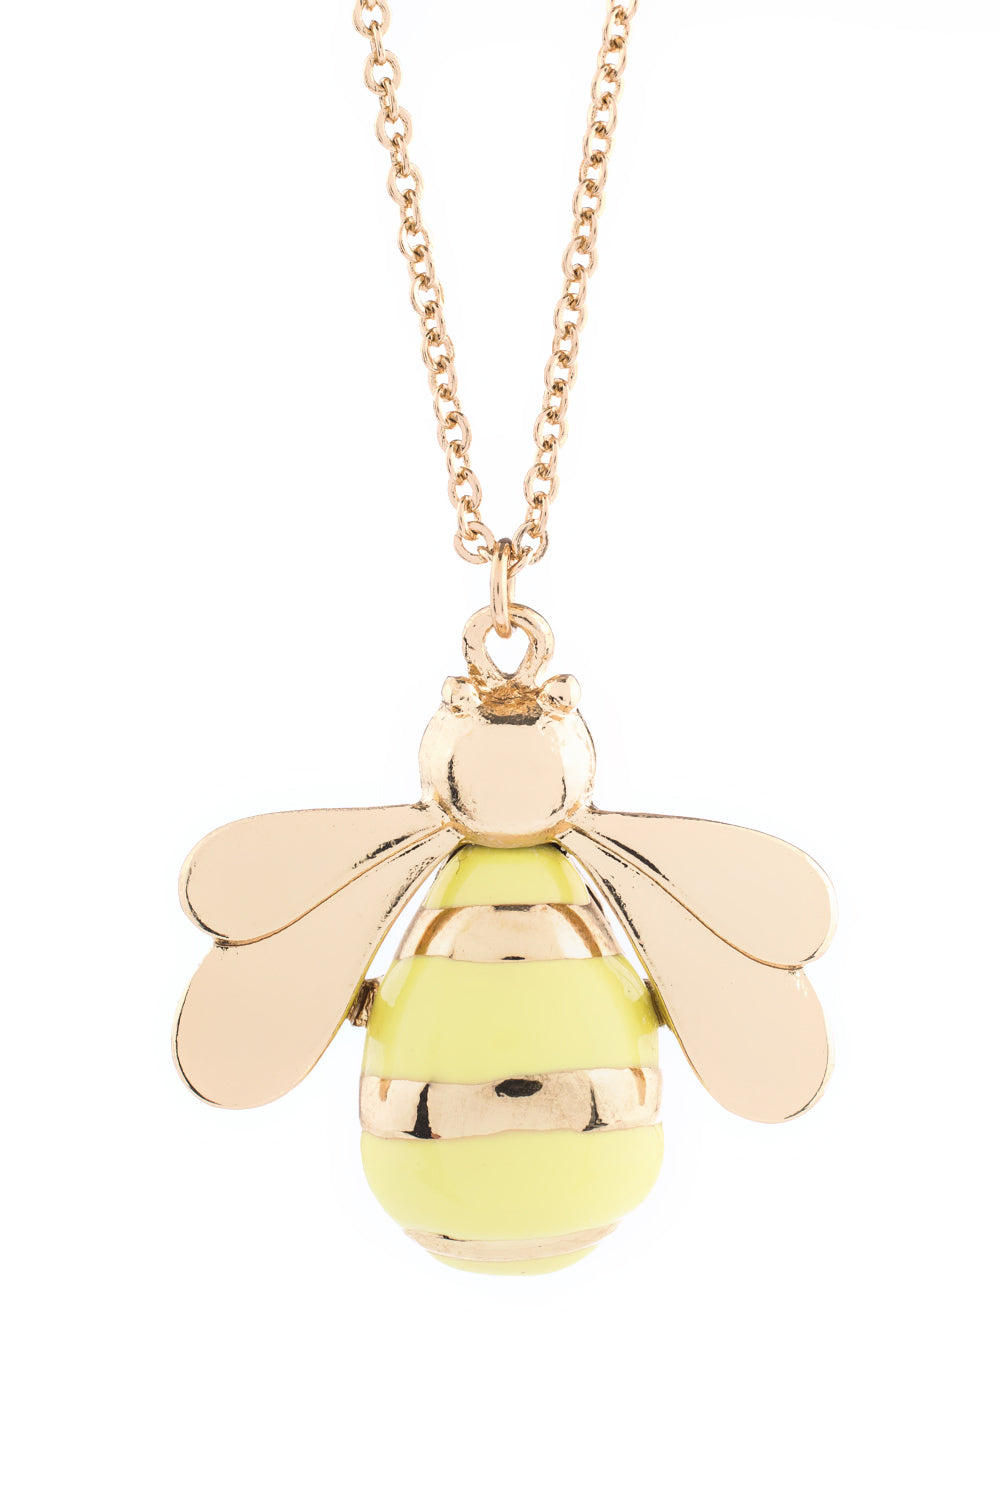 Type 1 Sugar Bee Necklace